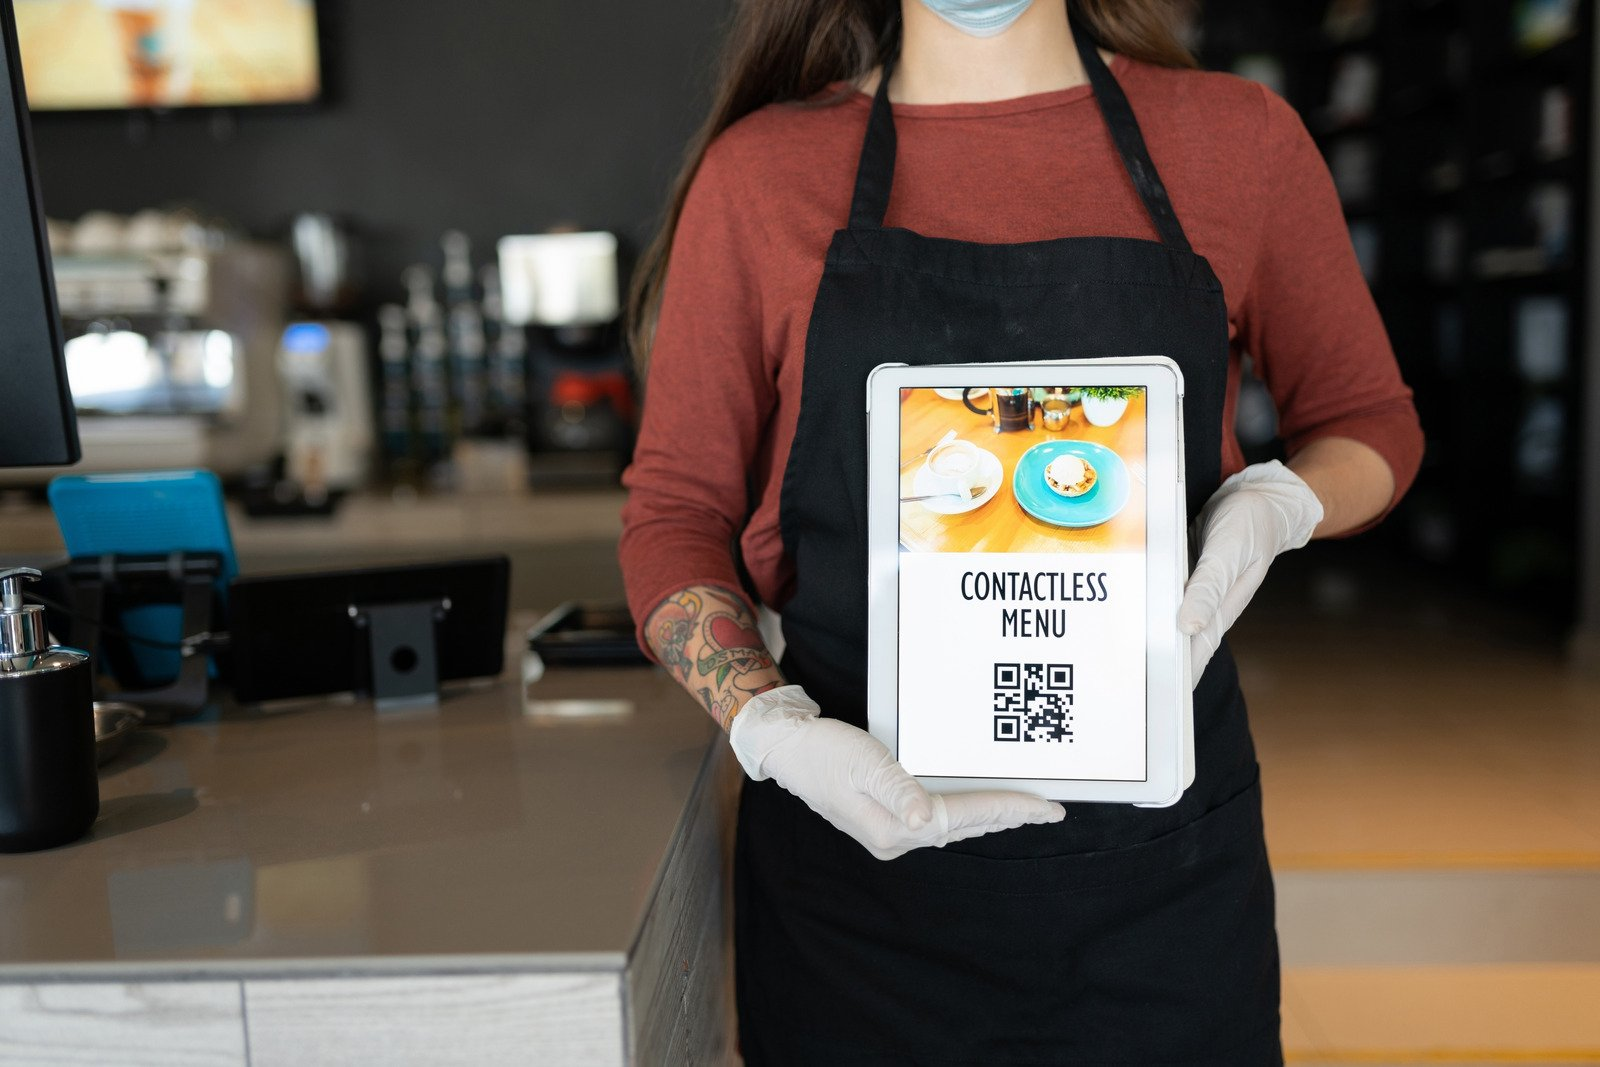 Contactless menu with QR code